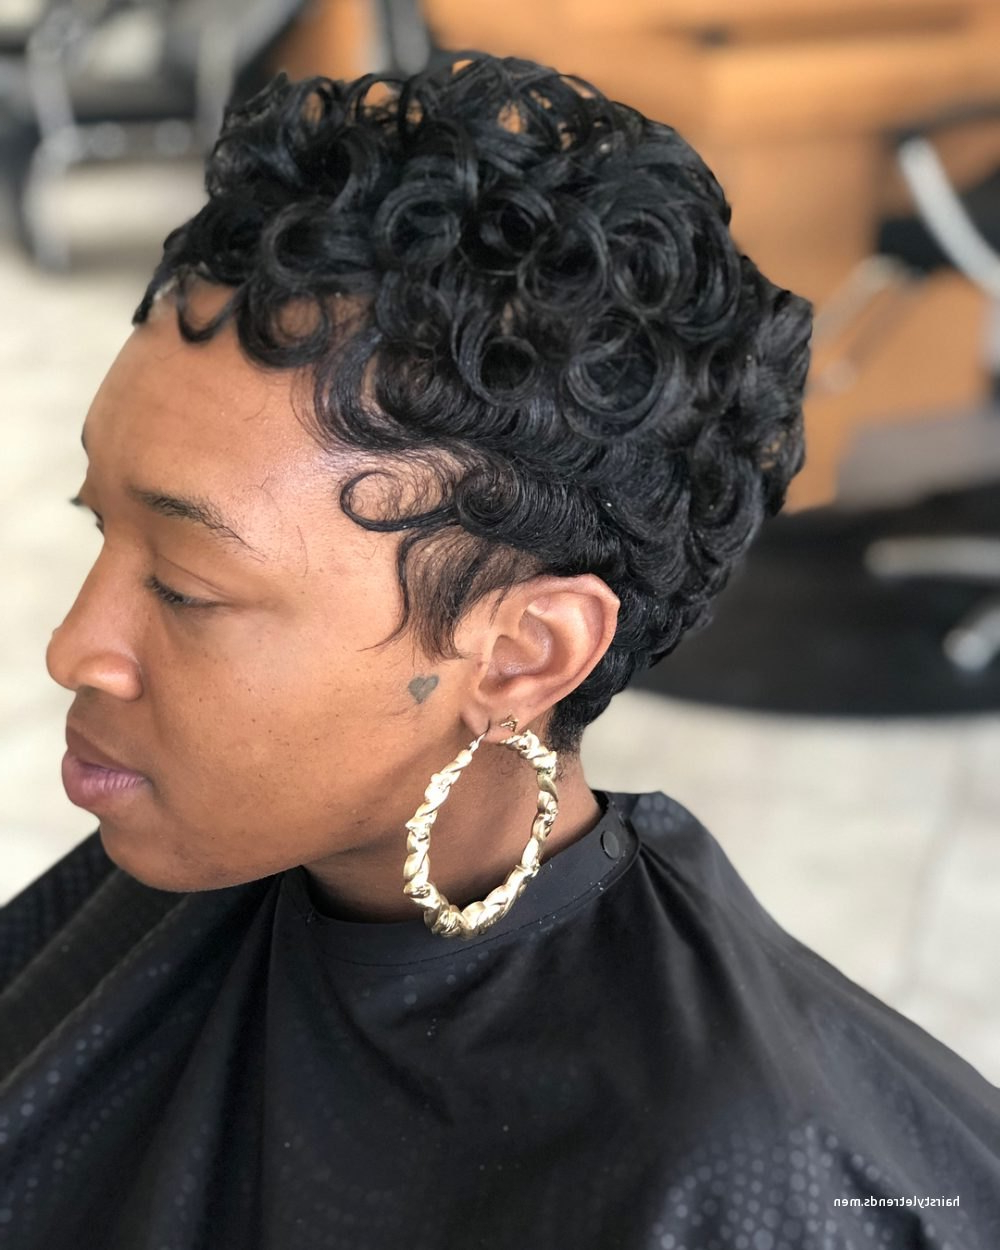 New African American Short Hairstyles For Round Faces • Hairstyletrends throughout Natural Short Hairstyles For Round Faces